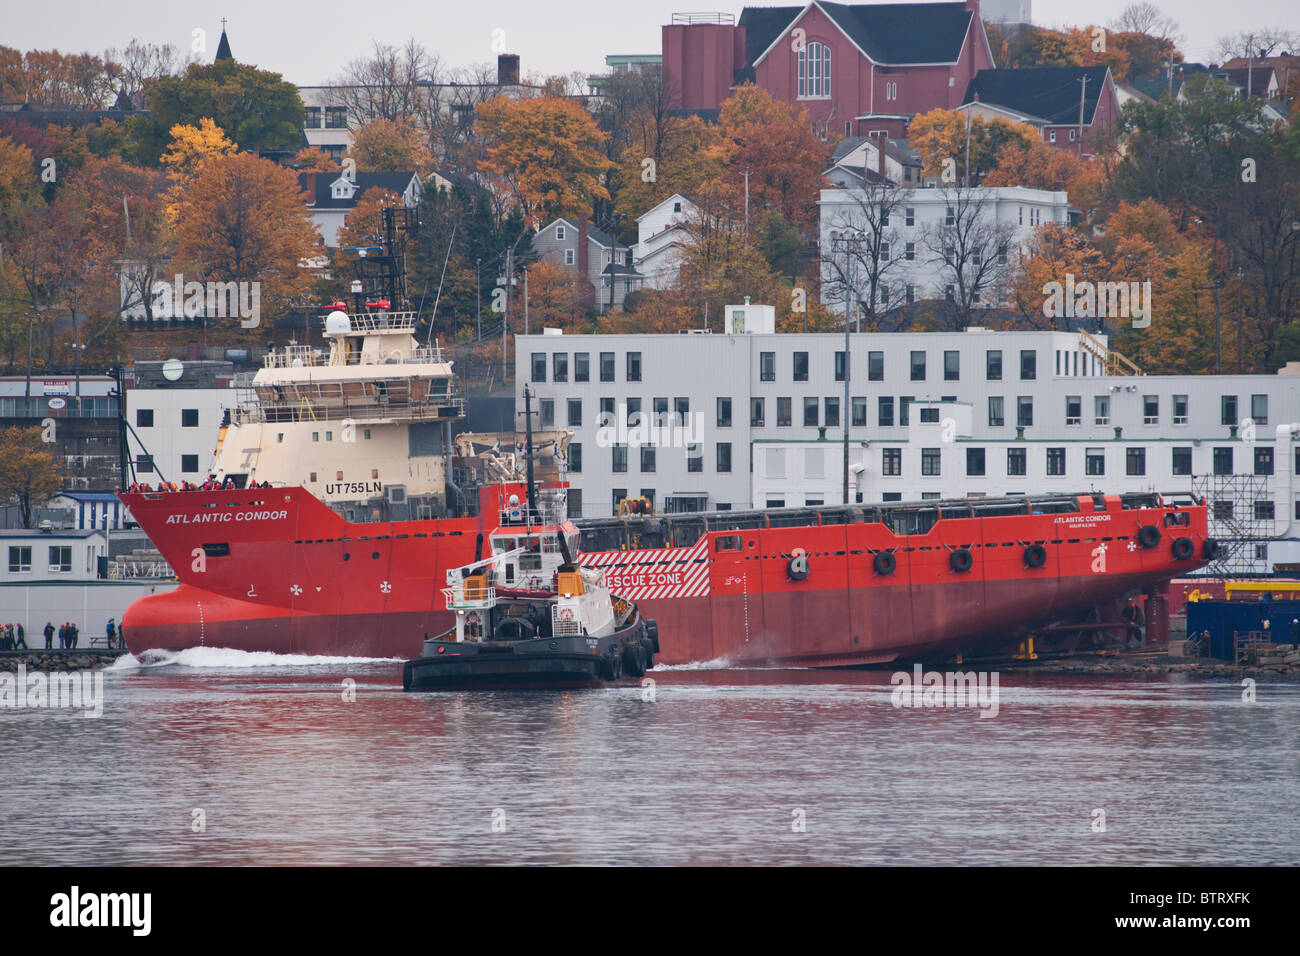 The rig supplier Atlantic Condor is launched down the ways at the Halifax Shipyard in Nova Scotia, Canada. - Stock Image